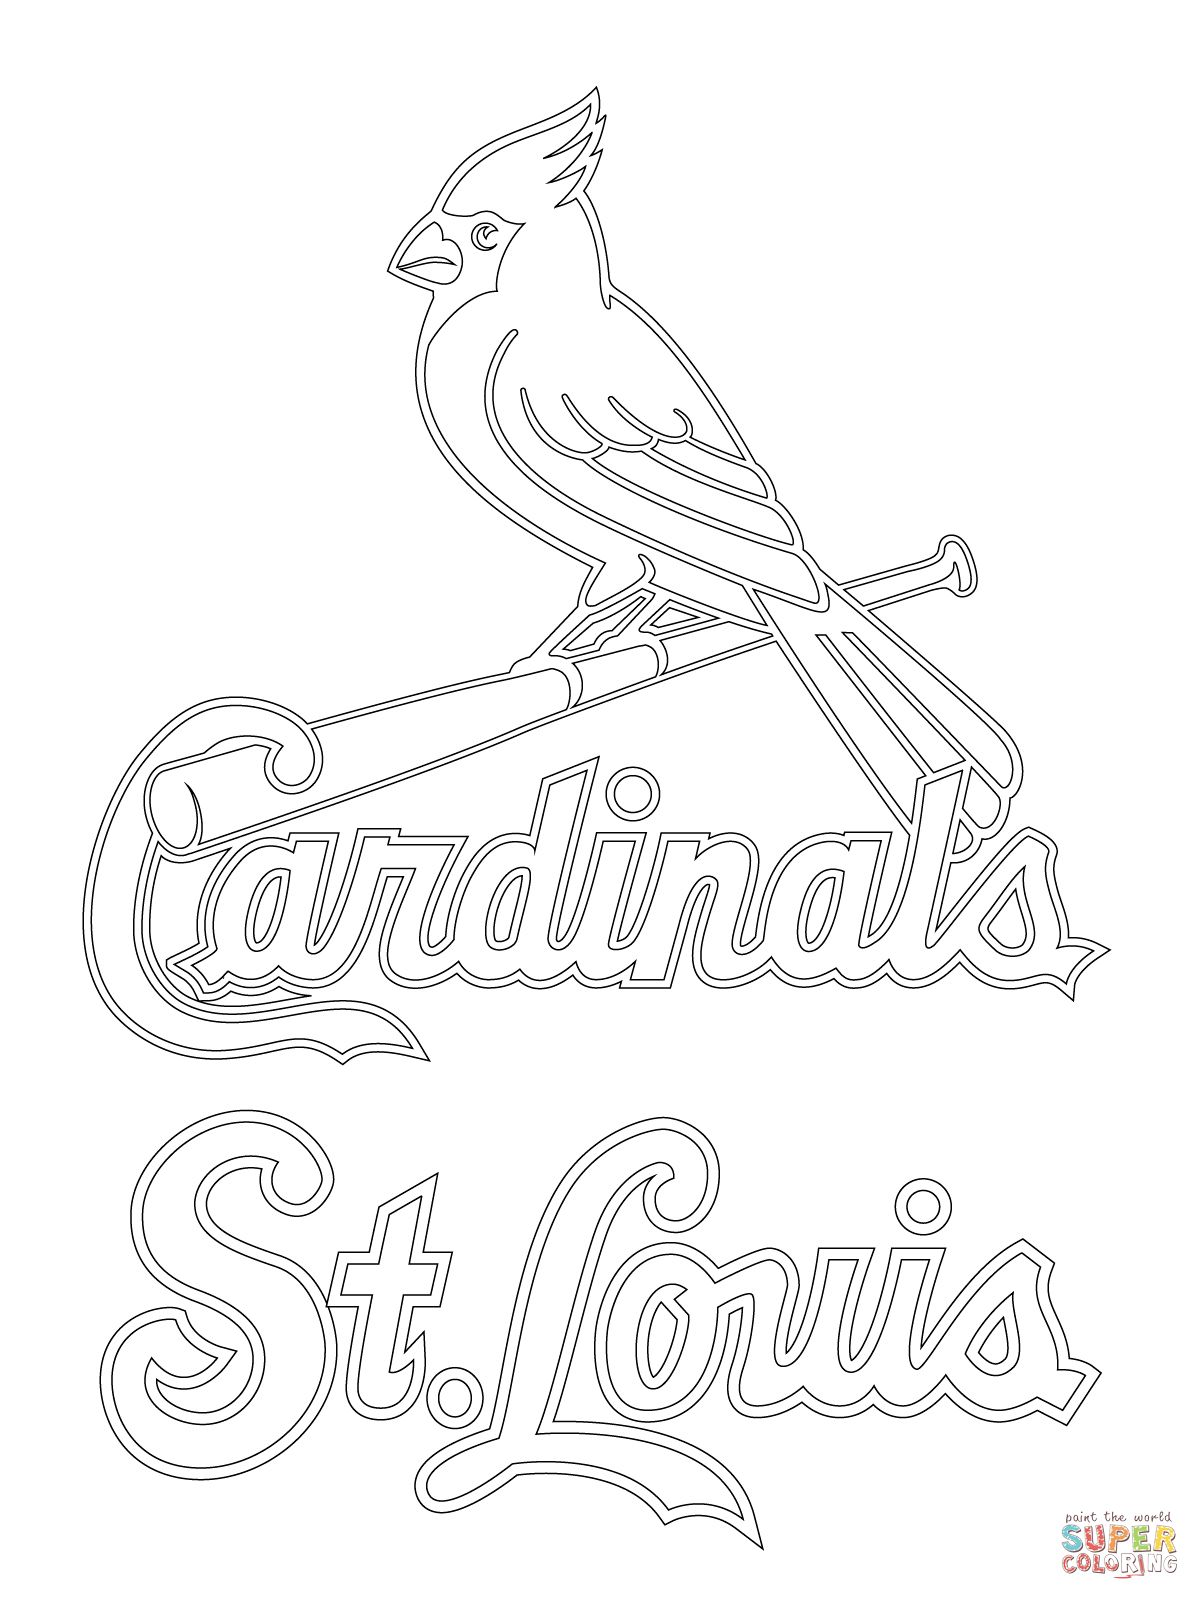 st louis coloring pages coloring books st louis gateway to the west louis coloring pages st